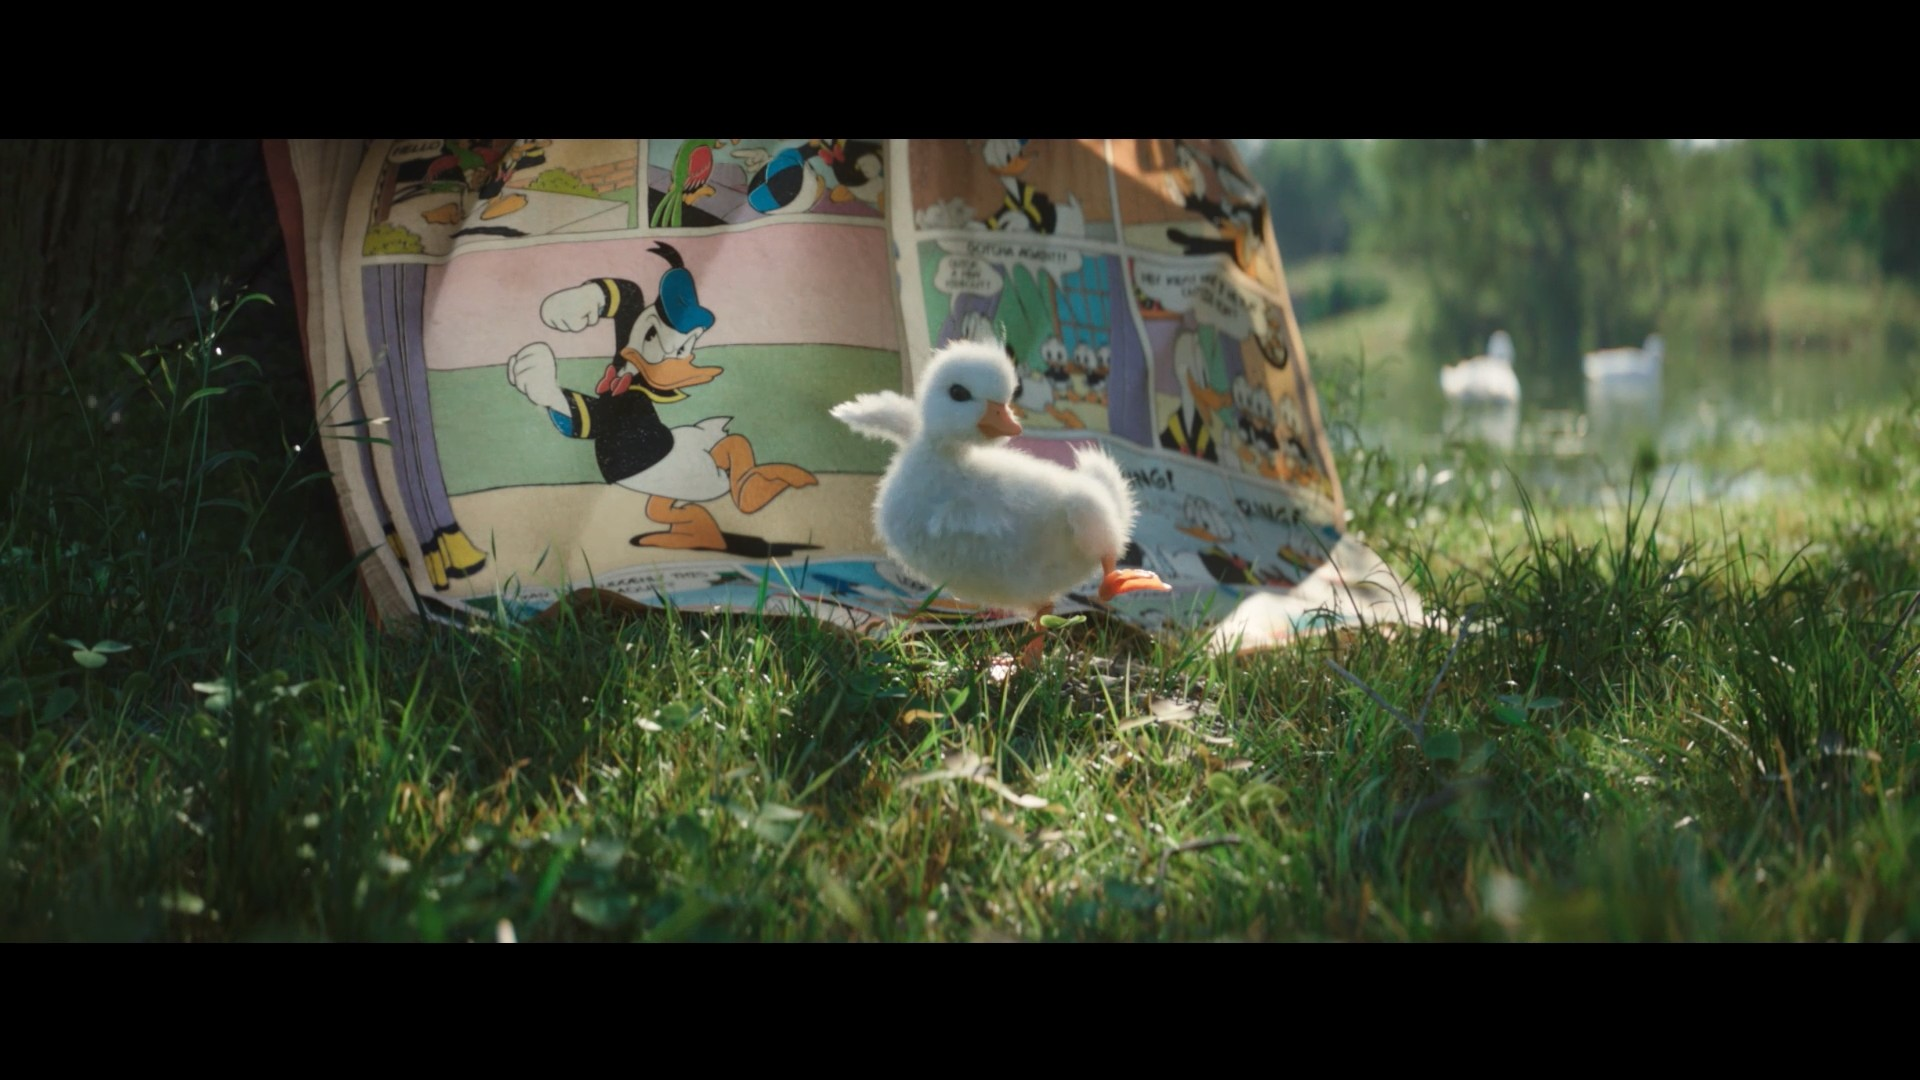 Quentin chaillet disneyduck 60s hd uk mp4 snapshot 00 16 2018 12 31 18 54 44